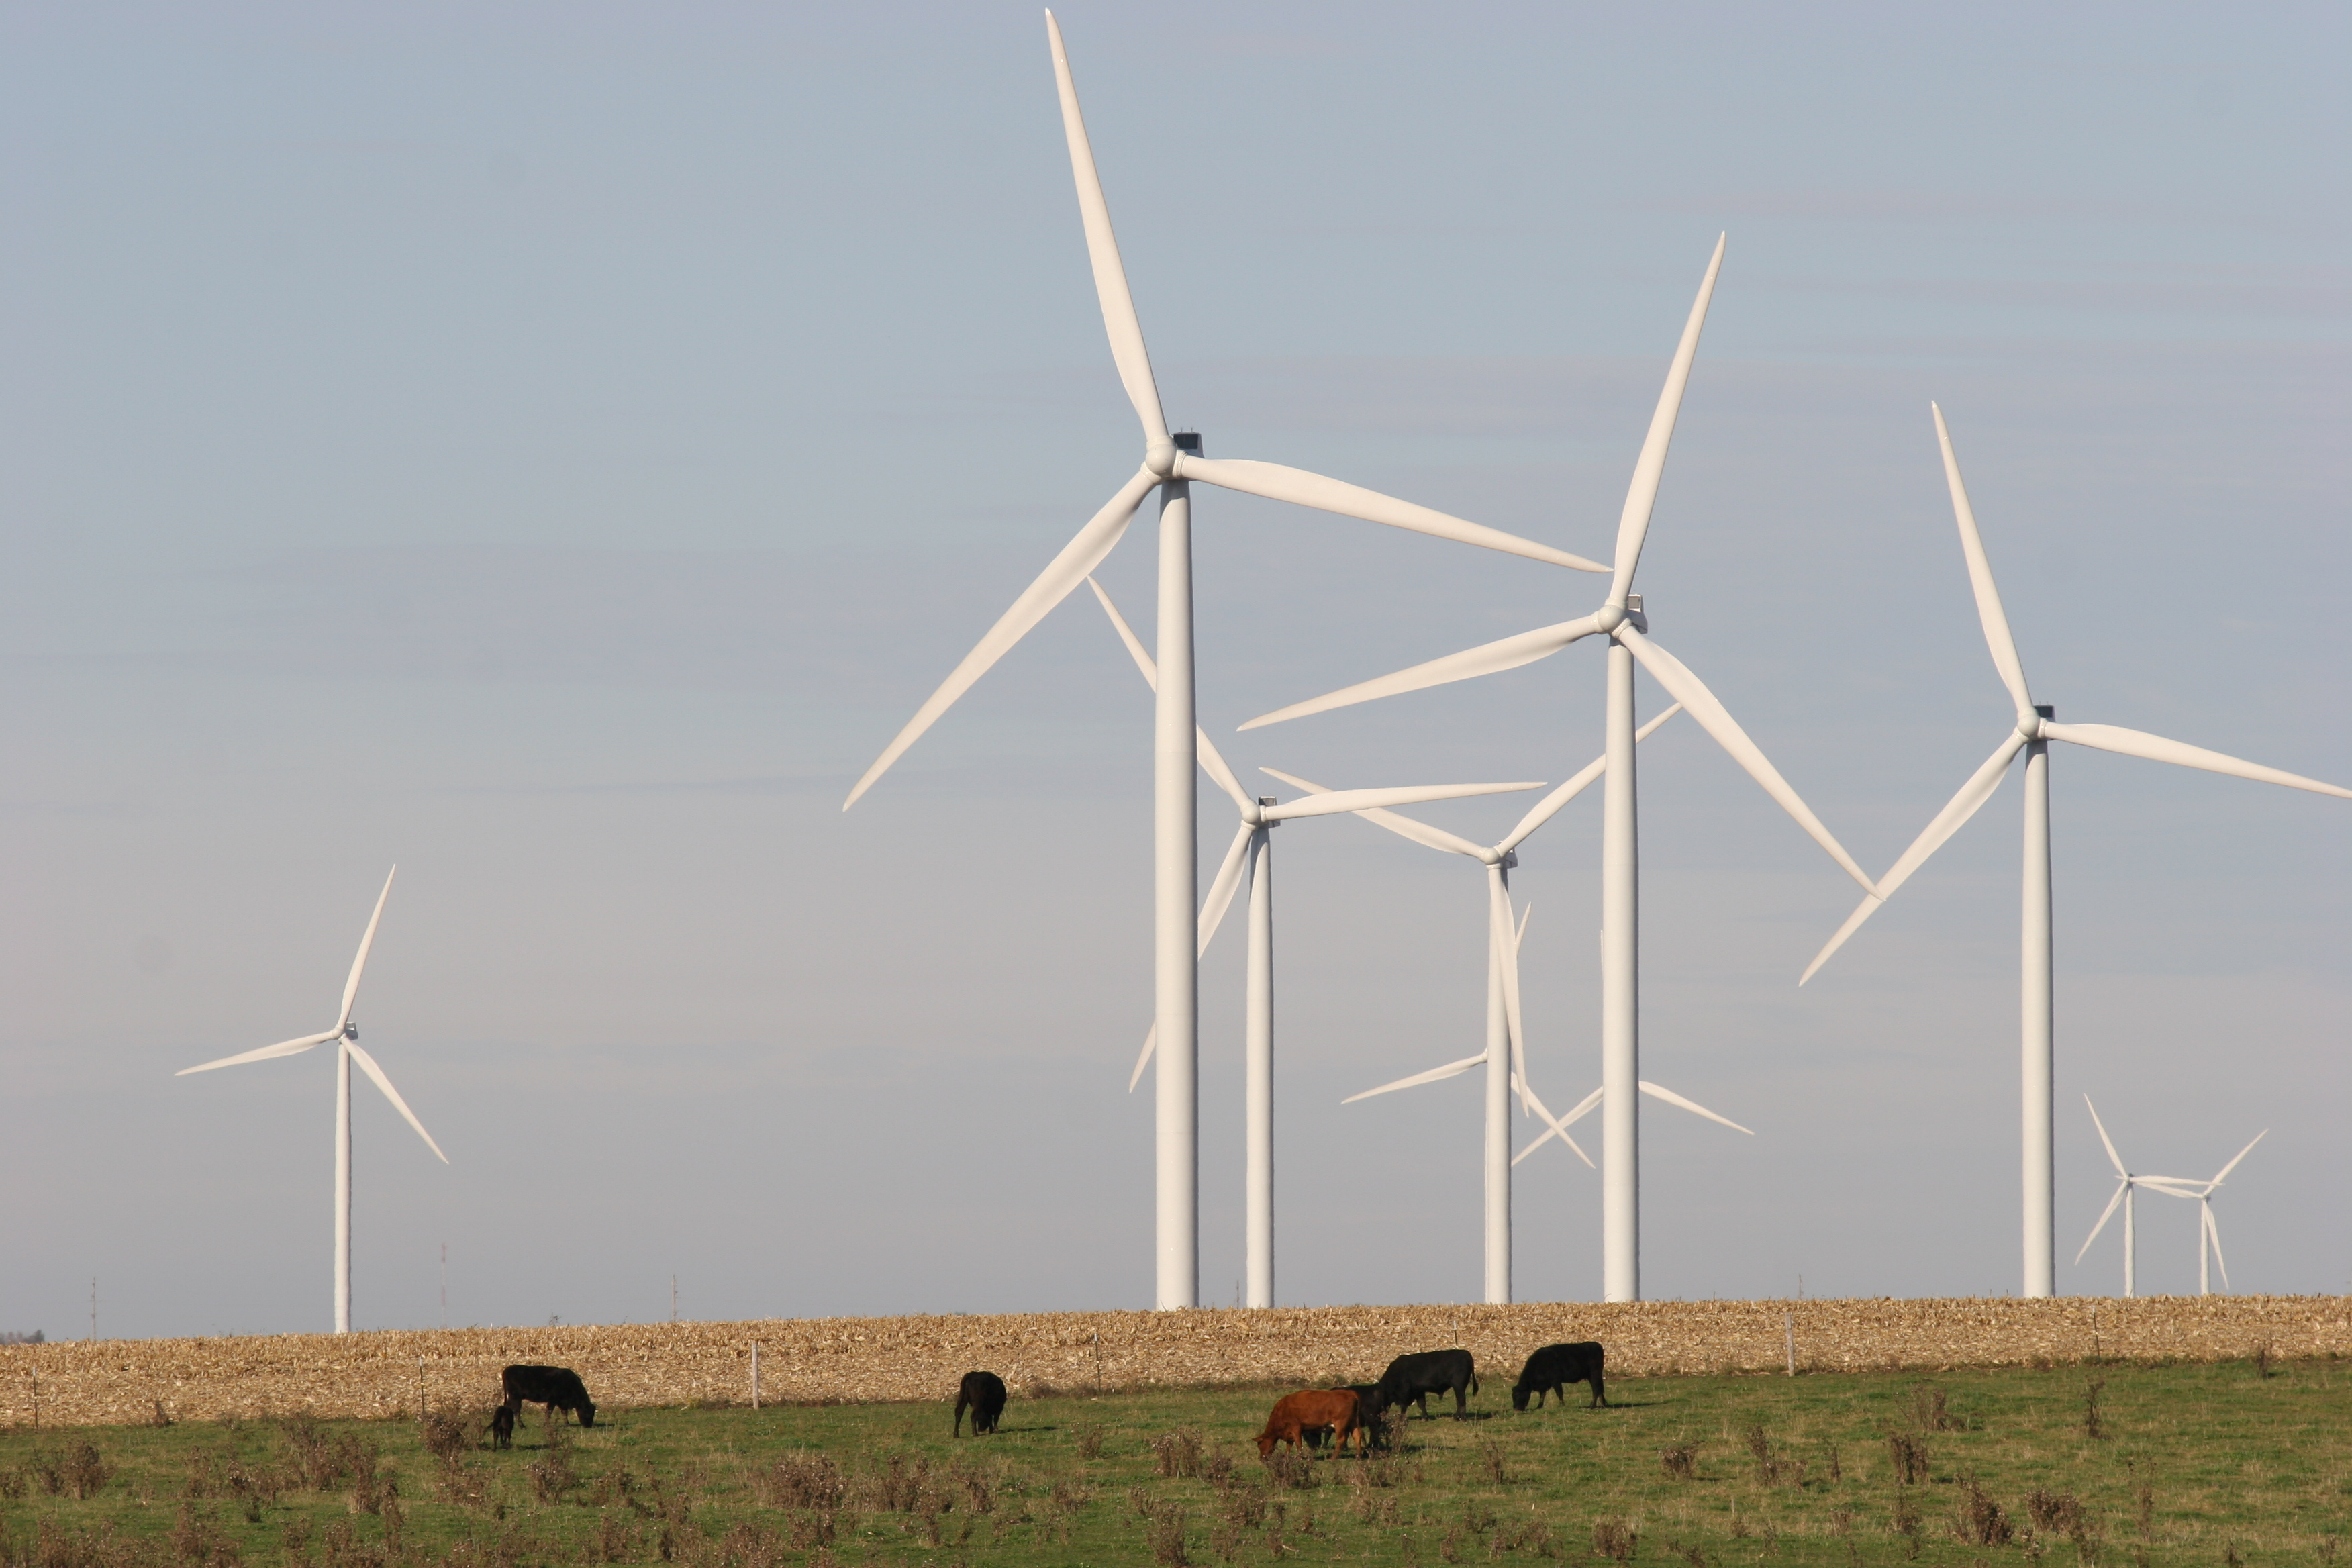 Wind Power Gains Momentum as a Viable Energy Alternative